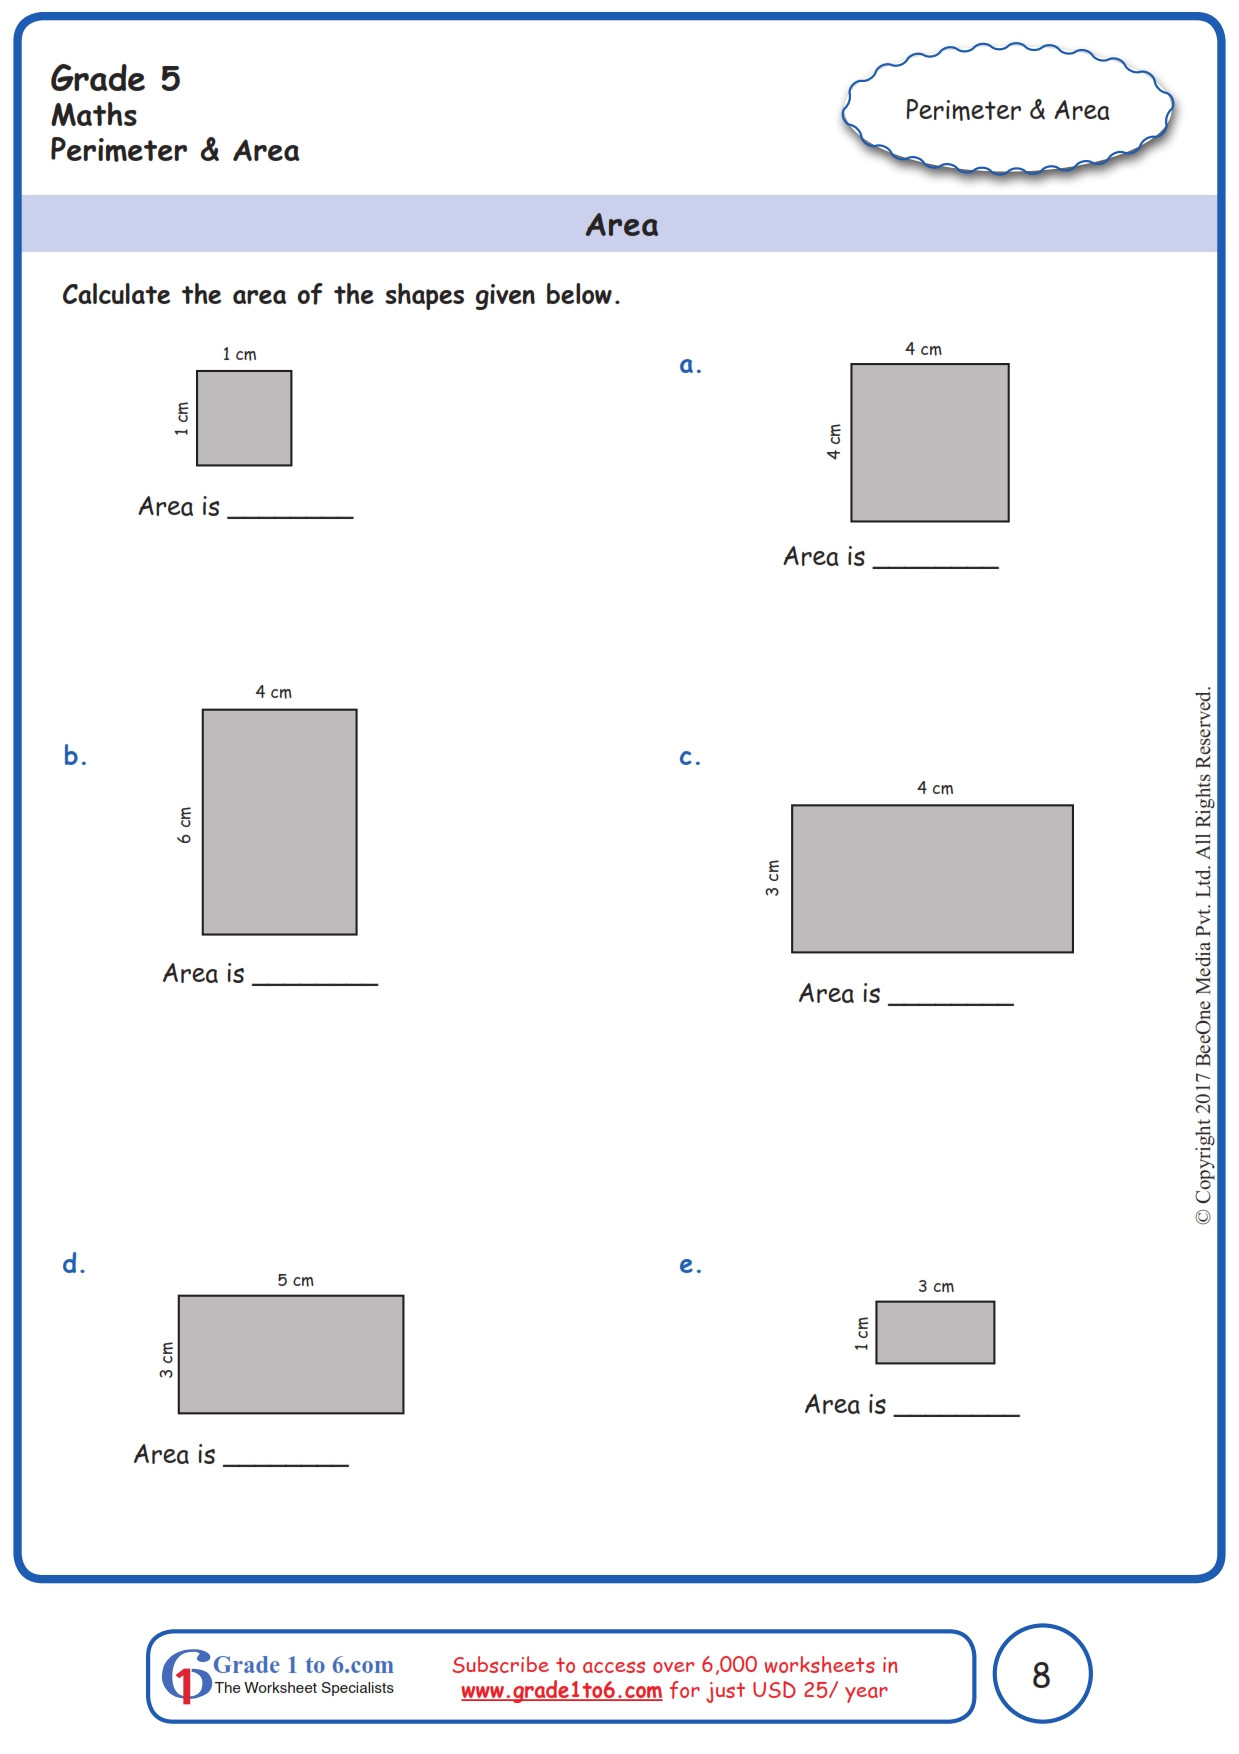 Perimeter Worksheet for 3rd Grade Free Perimeter and area Worksheets Grade 5